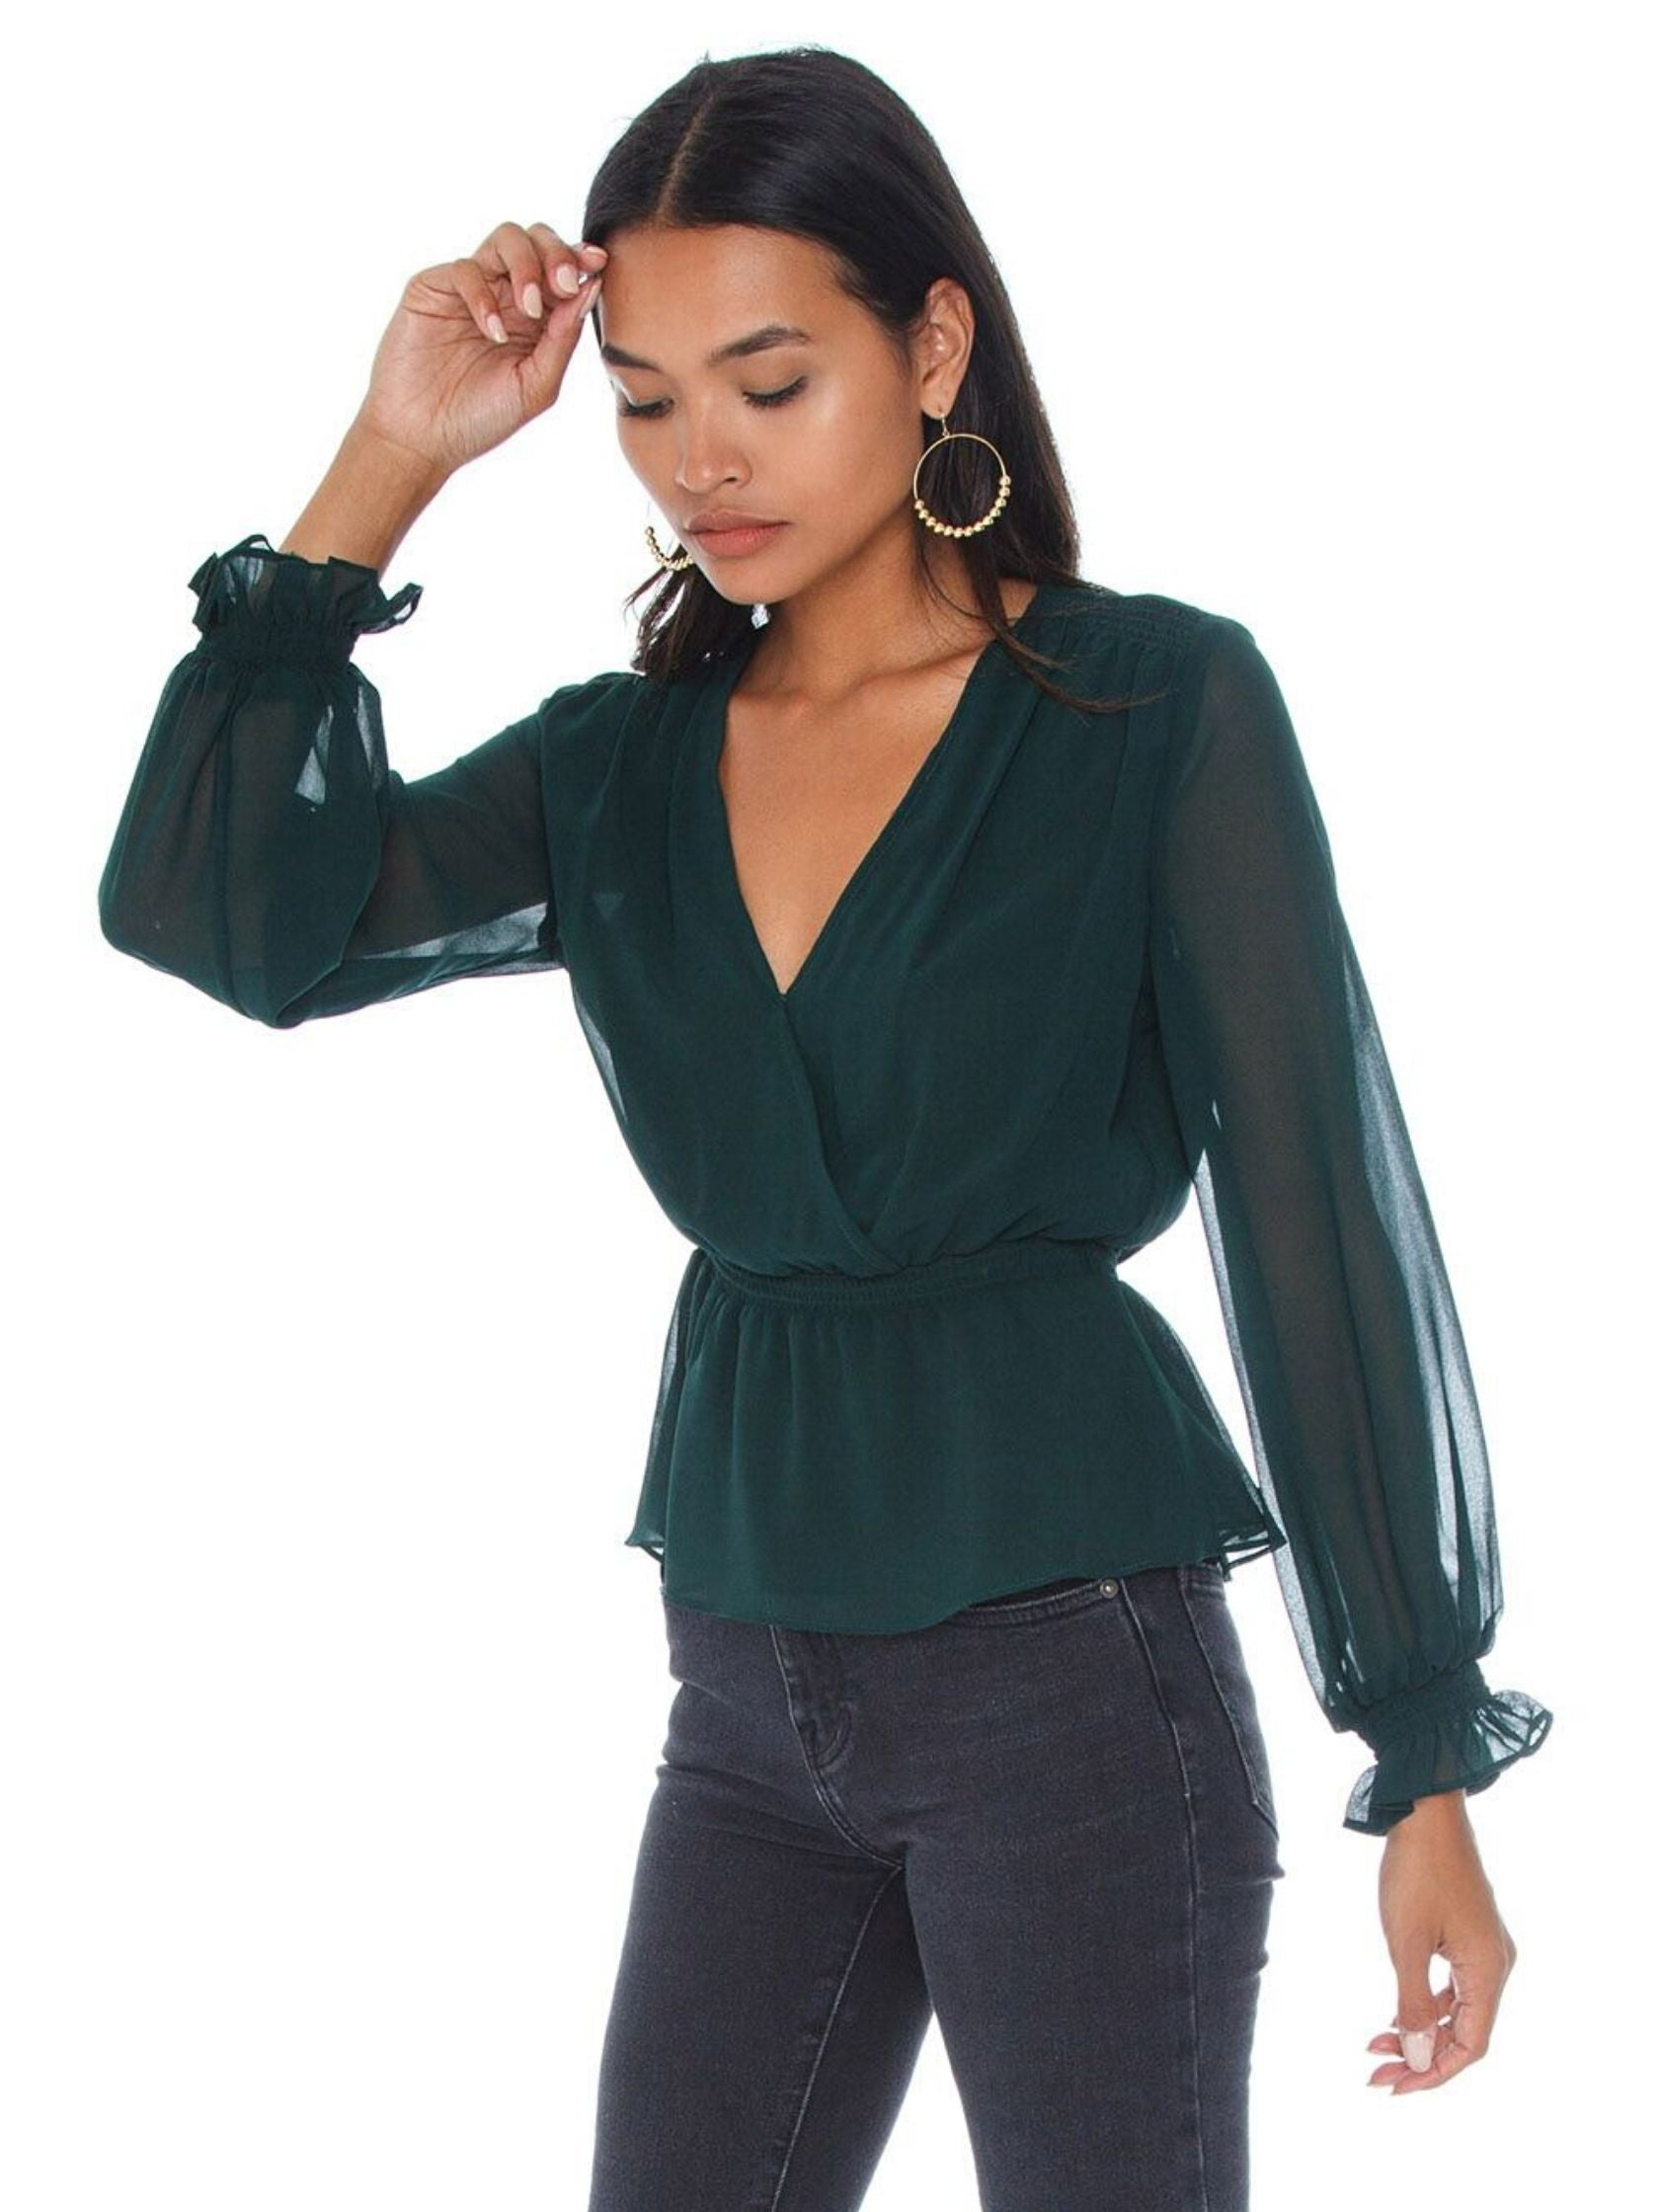 Women wearing a top rental from 1.STATE called Cinched Waist Wrap Front Blouse